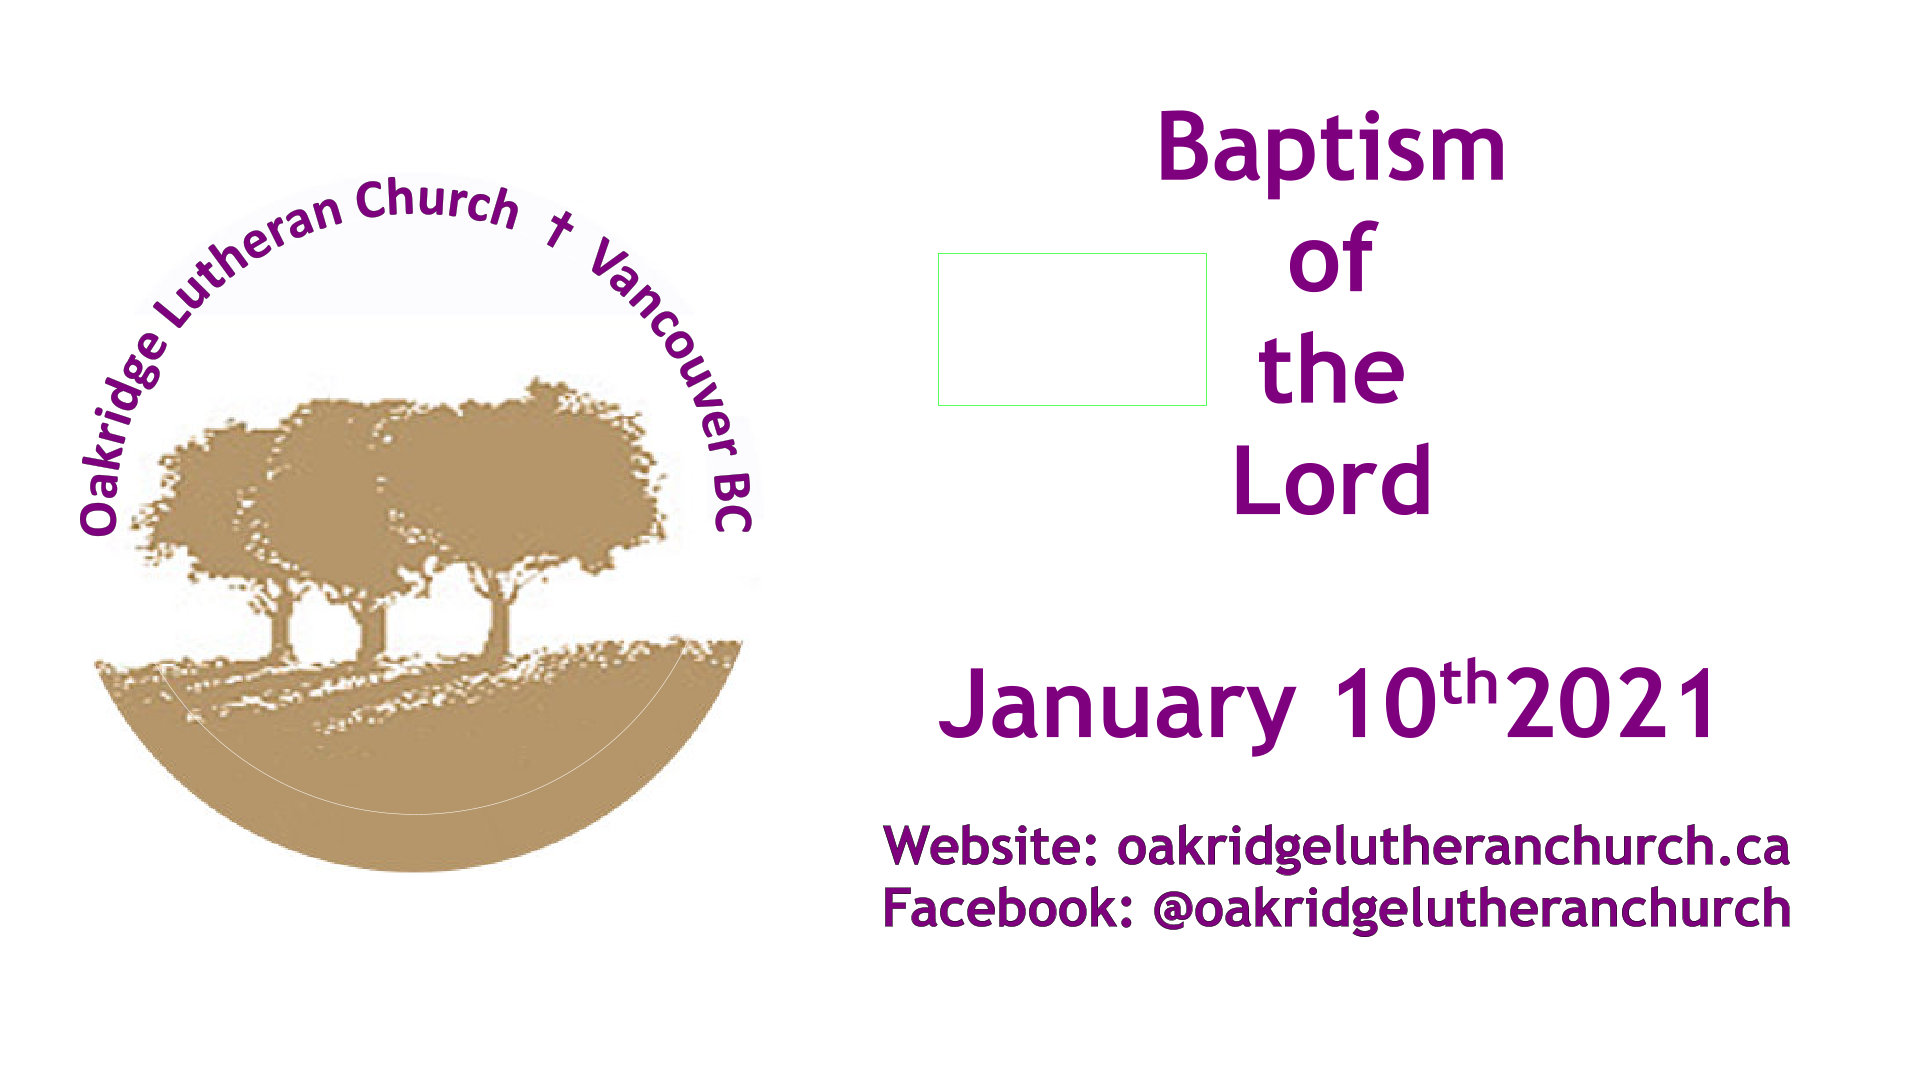 10 Jan 2021 Baptism of the Lord